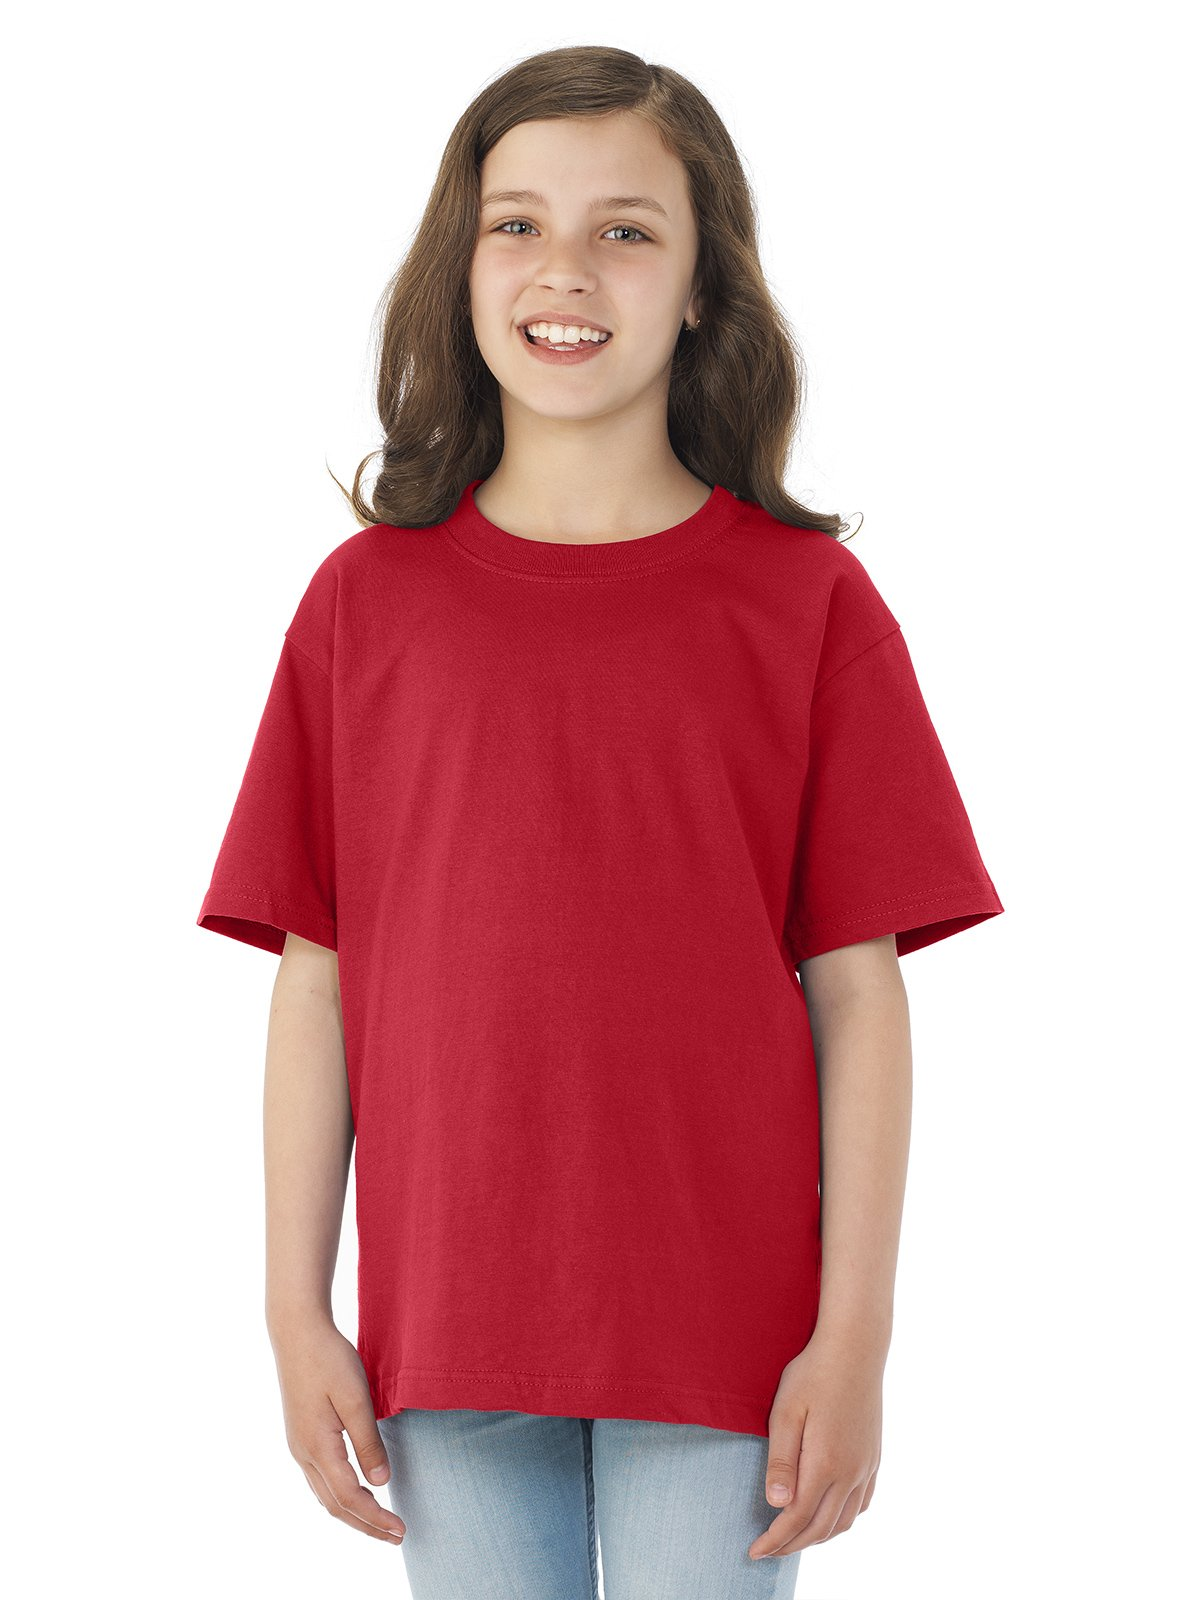 Jerzees Youth HiDENSI-T Short Sleeve Crew T-Shirt, JZ363BR, XS, True Red